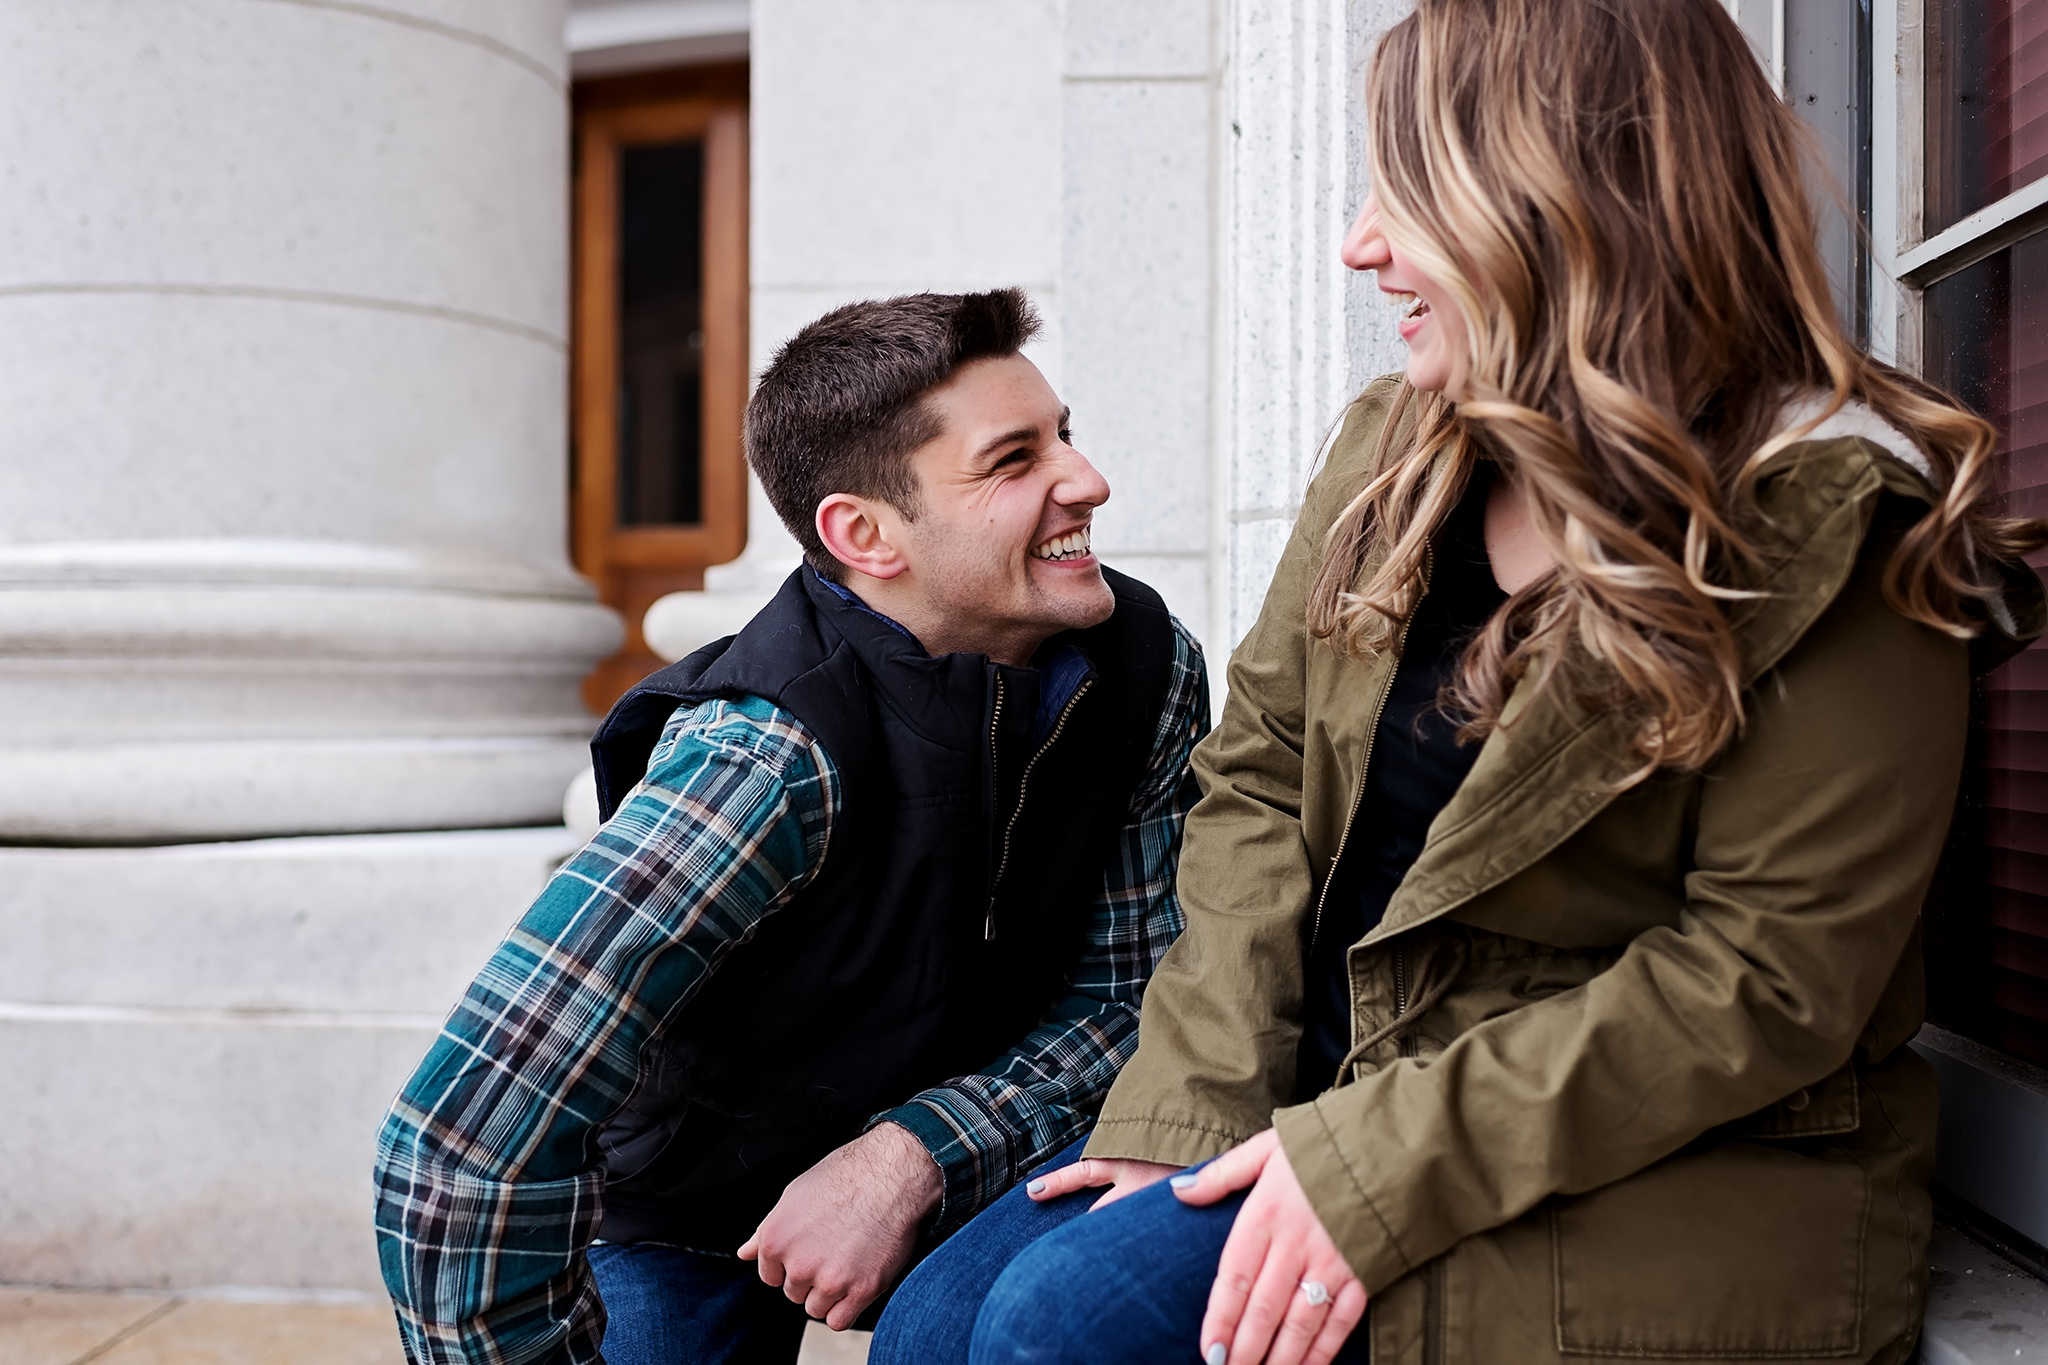 Man down on one knee pretending to propose at Wisconsin state capitol